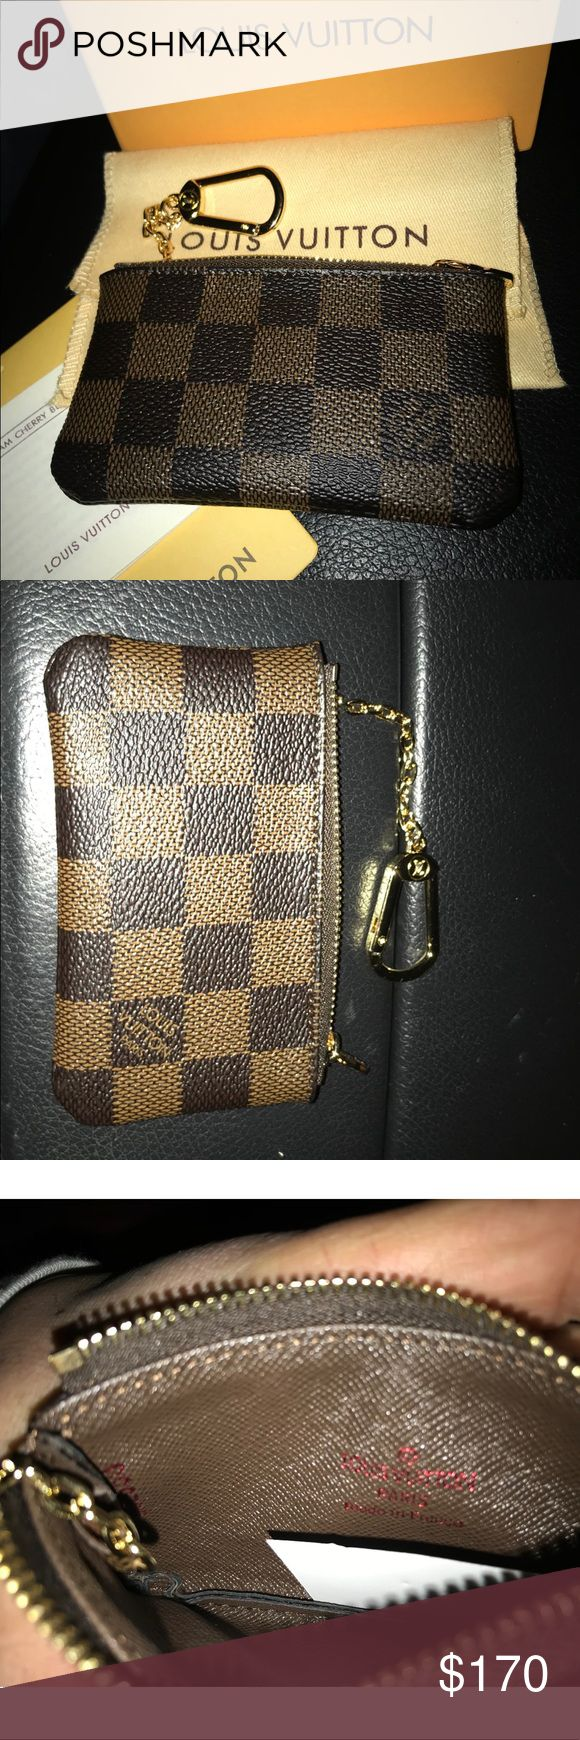 Louise Vuitton wallet Louise Vuitton monogram wallet, comes with box, dust bag, and monogram tag. Please don't ask for trades, no low balling. Happy poshing! Louis Vuitton Bags Wallets